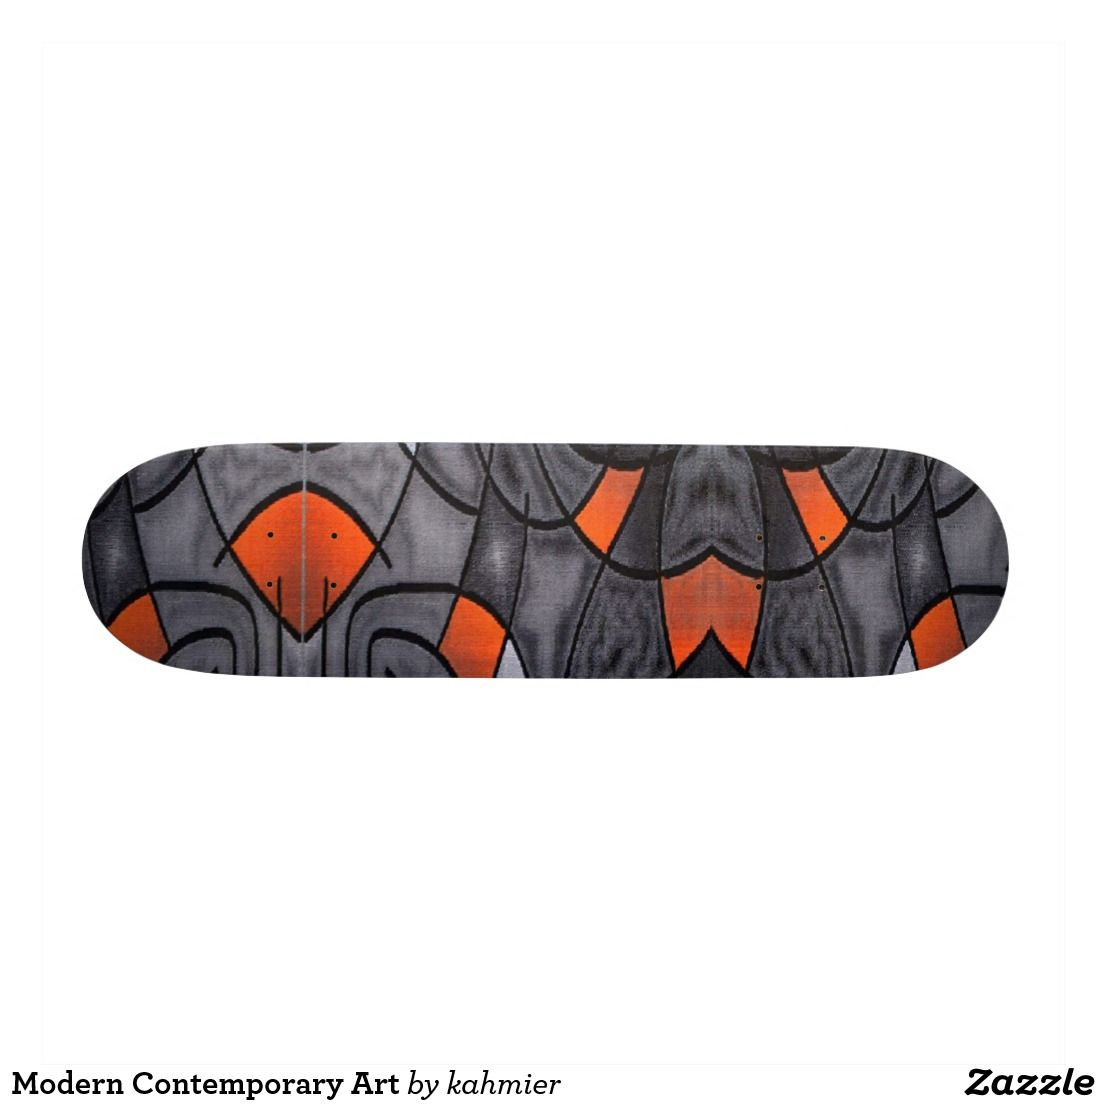 Modern Contemporary Art Skateboard Zazzle Com Contemporary Modern Art Contemporary Art Modern Contemporary